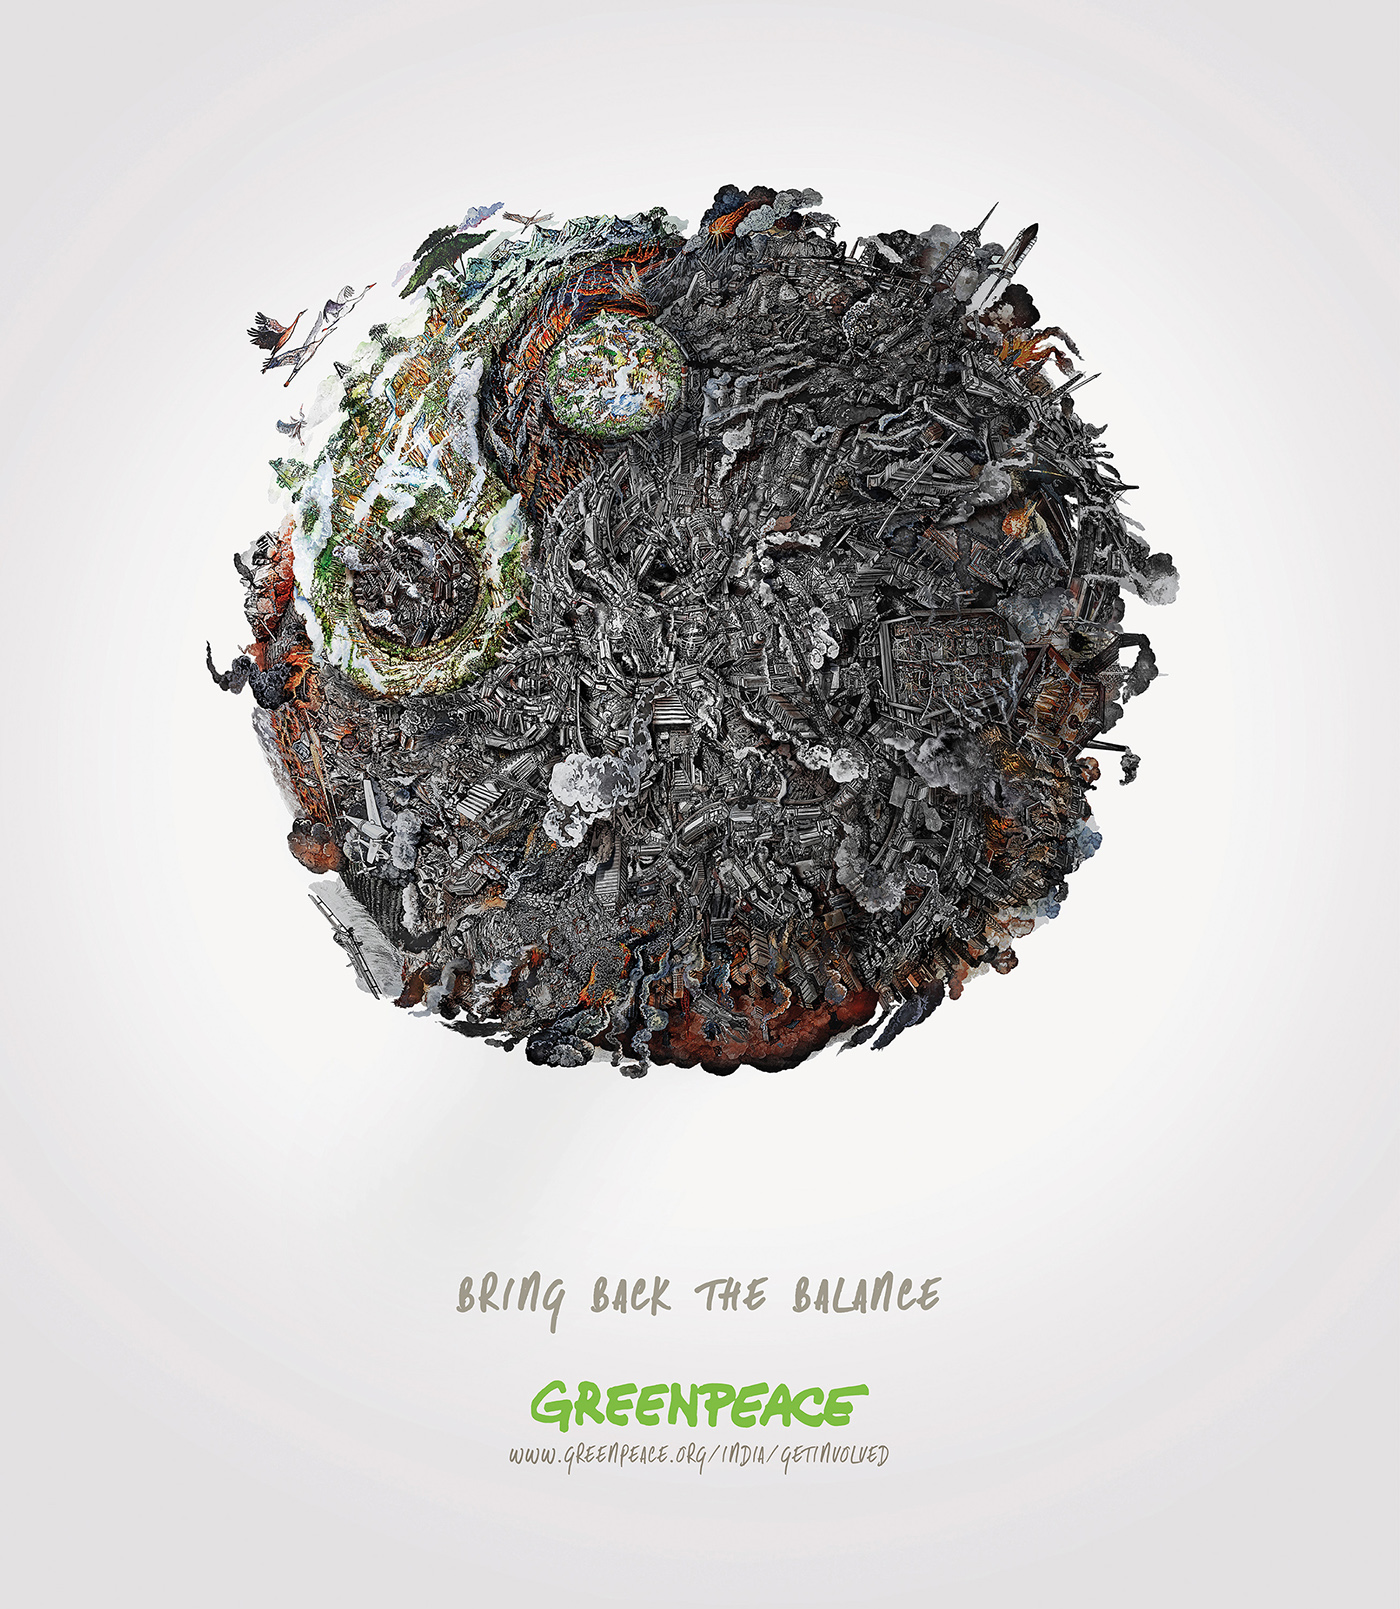 earth balance Greenpeace India volunteer McCann trees Nature pollution smoke environment Environmental Issues line drawing watercolor graphic